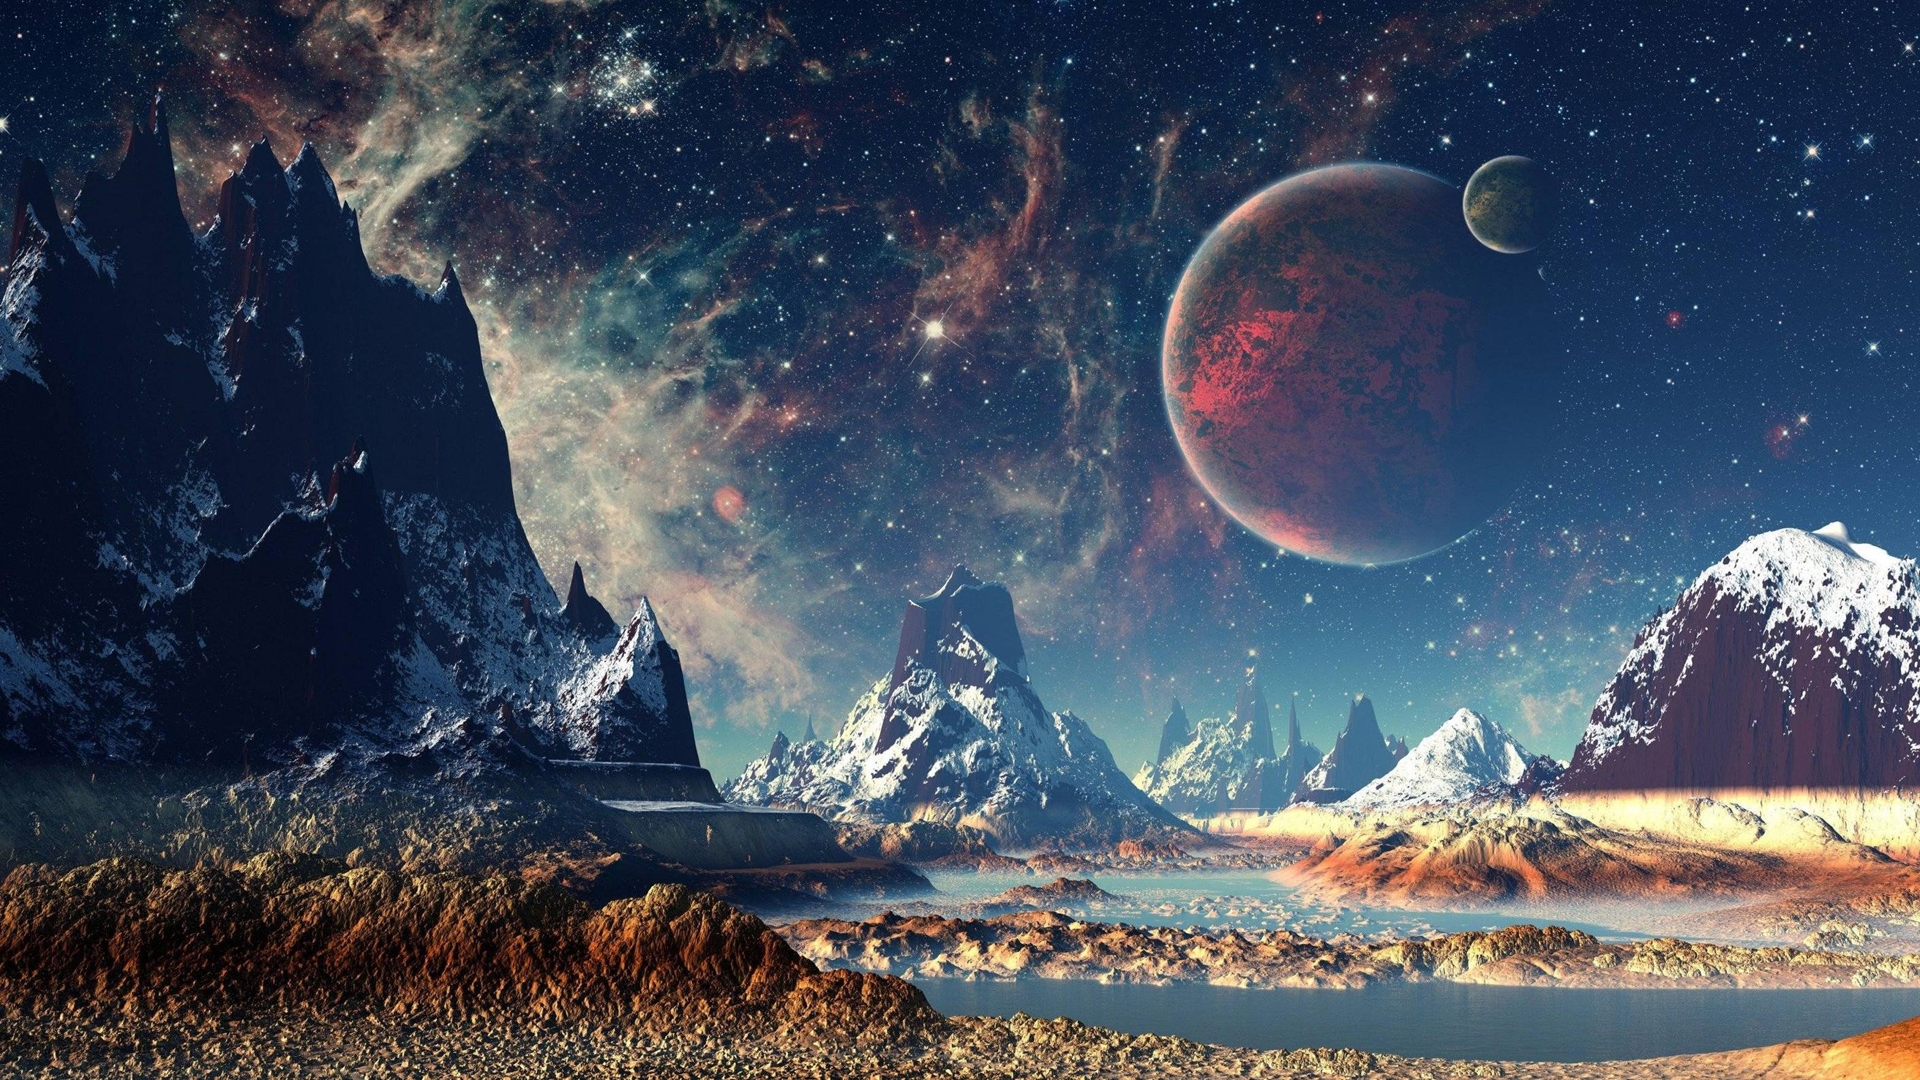 10 Best Space Hd Wallpapers 1080p Widescreen Full Hd 1080p: Wallpaper Wednesday 4-13